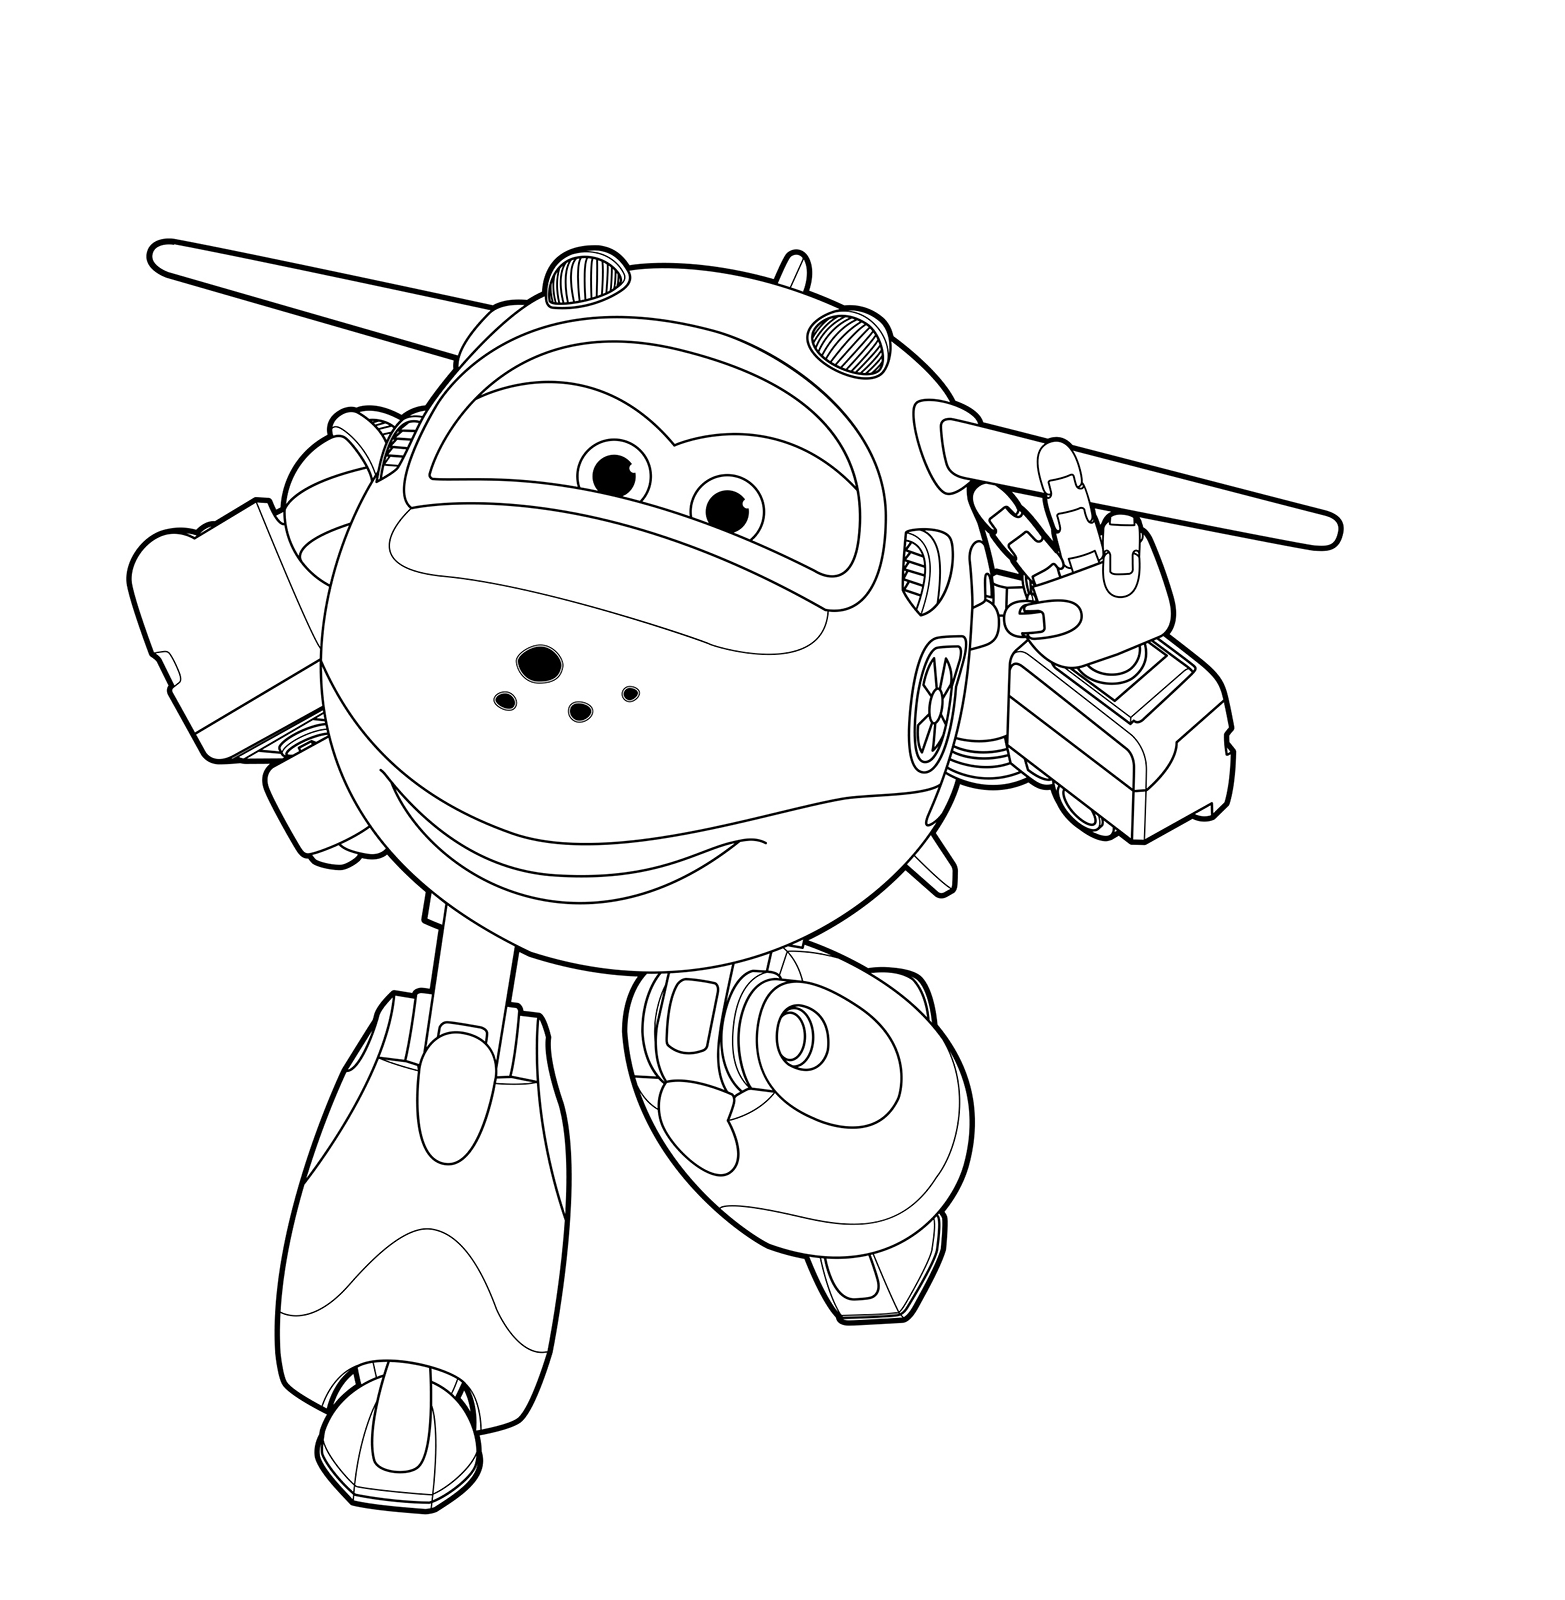 Super wings mira the airplane which may fall into the abyss for Disegni da colorare super wings